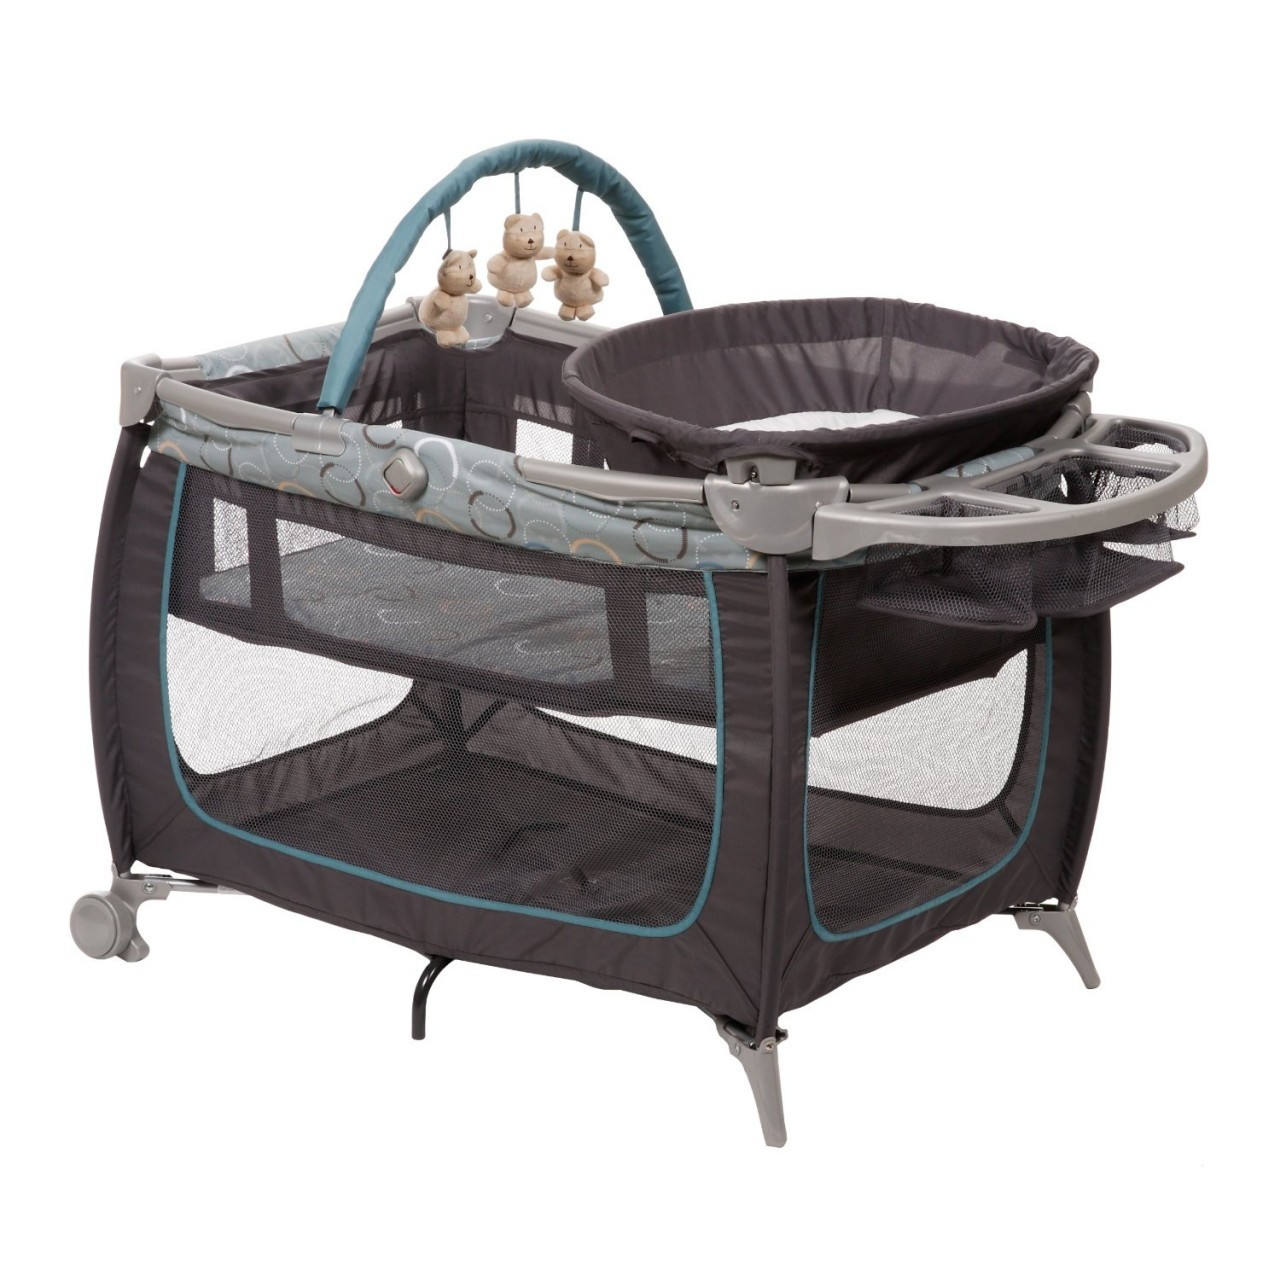 BER?O SAFETY 1ST PRELUDE PLAY YARD RINGS